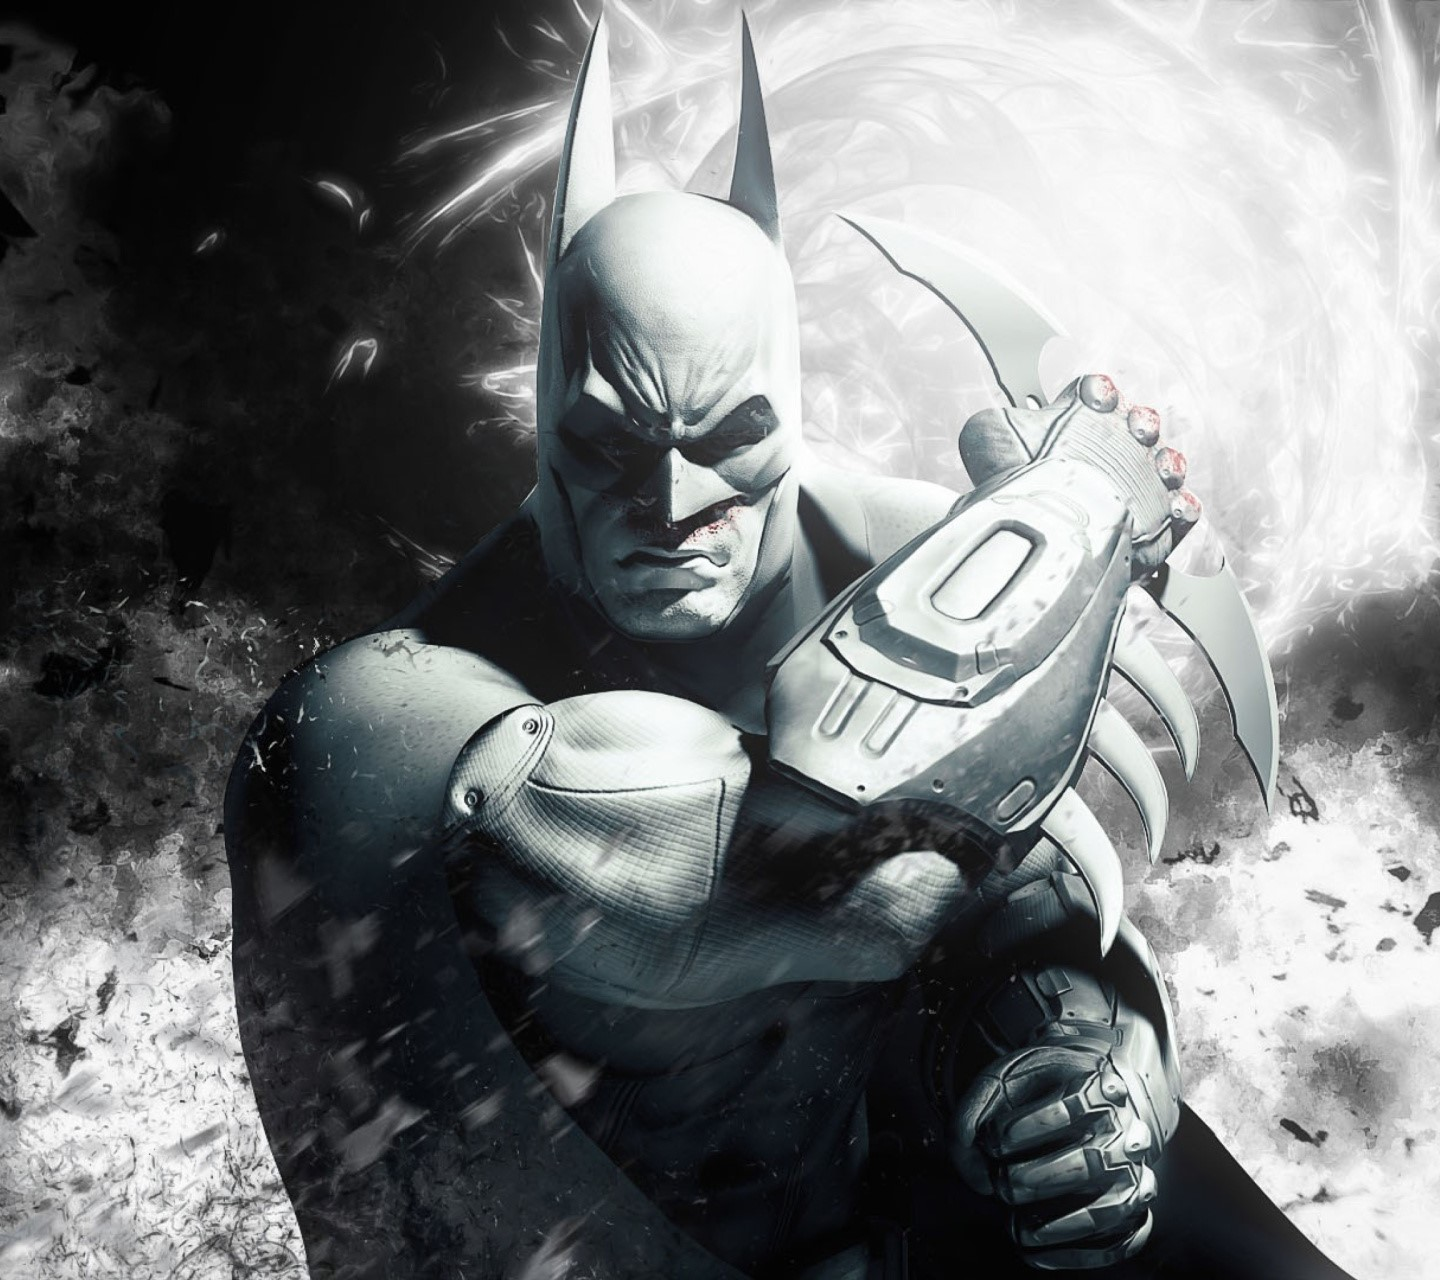 Batman Anime wallpaper 9743379